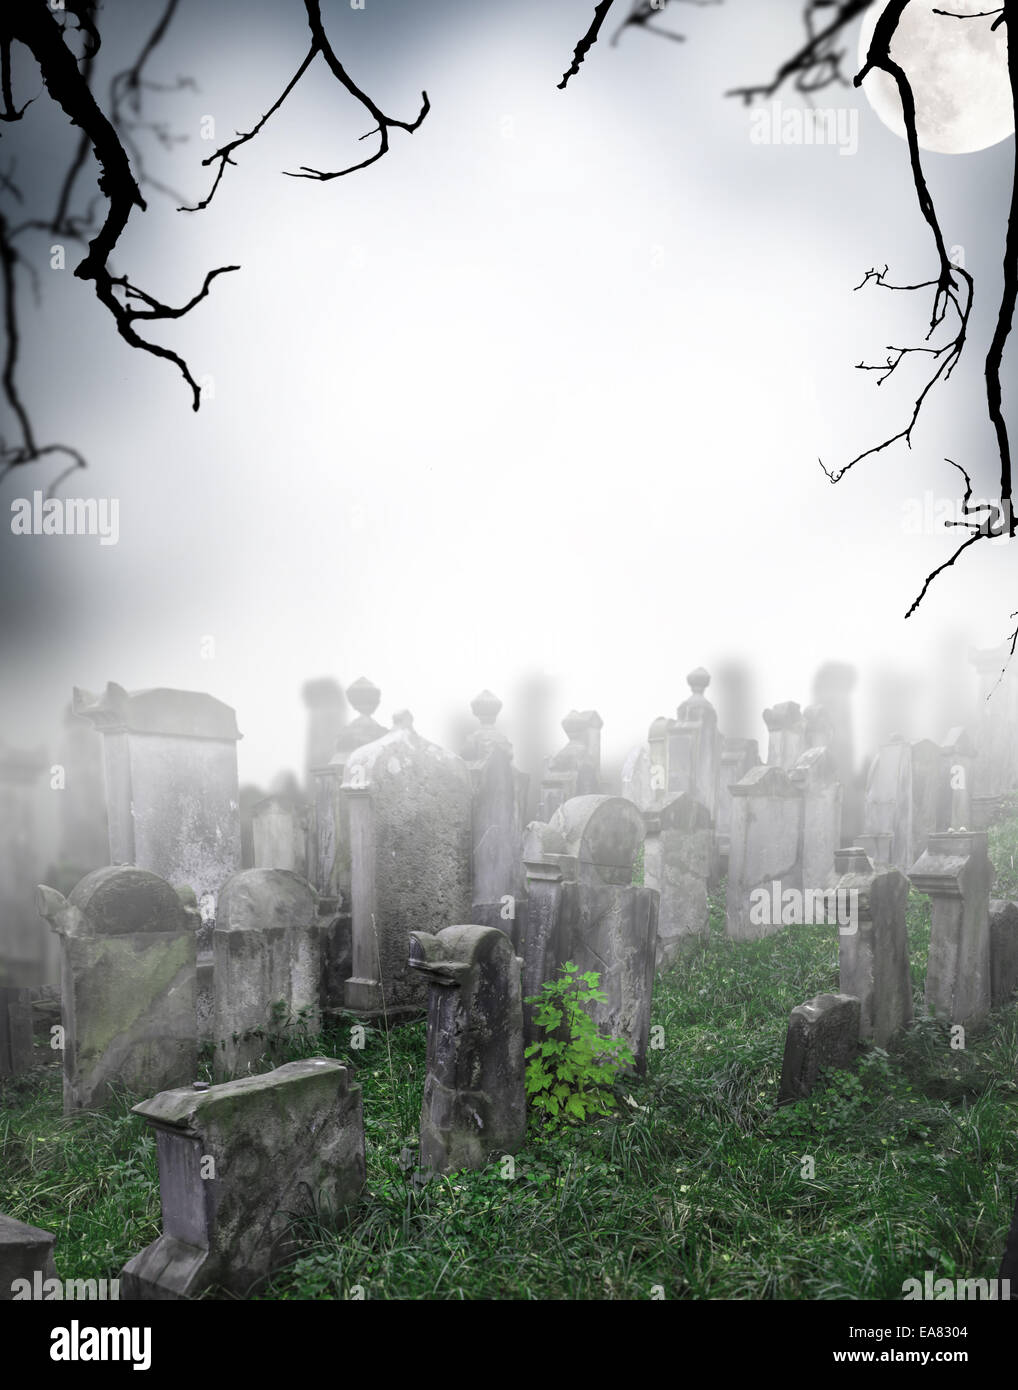 spooky halloween cemetery with graves stock photo: 75166004 - alamy